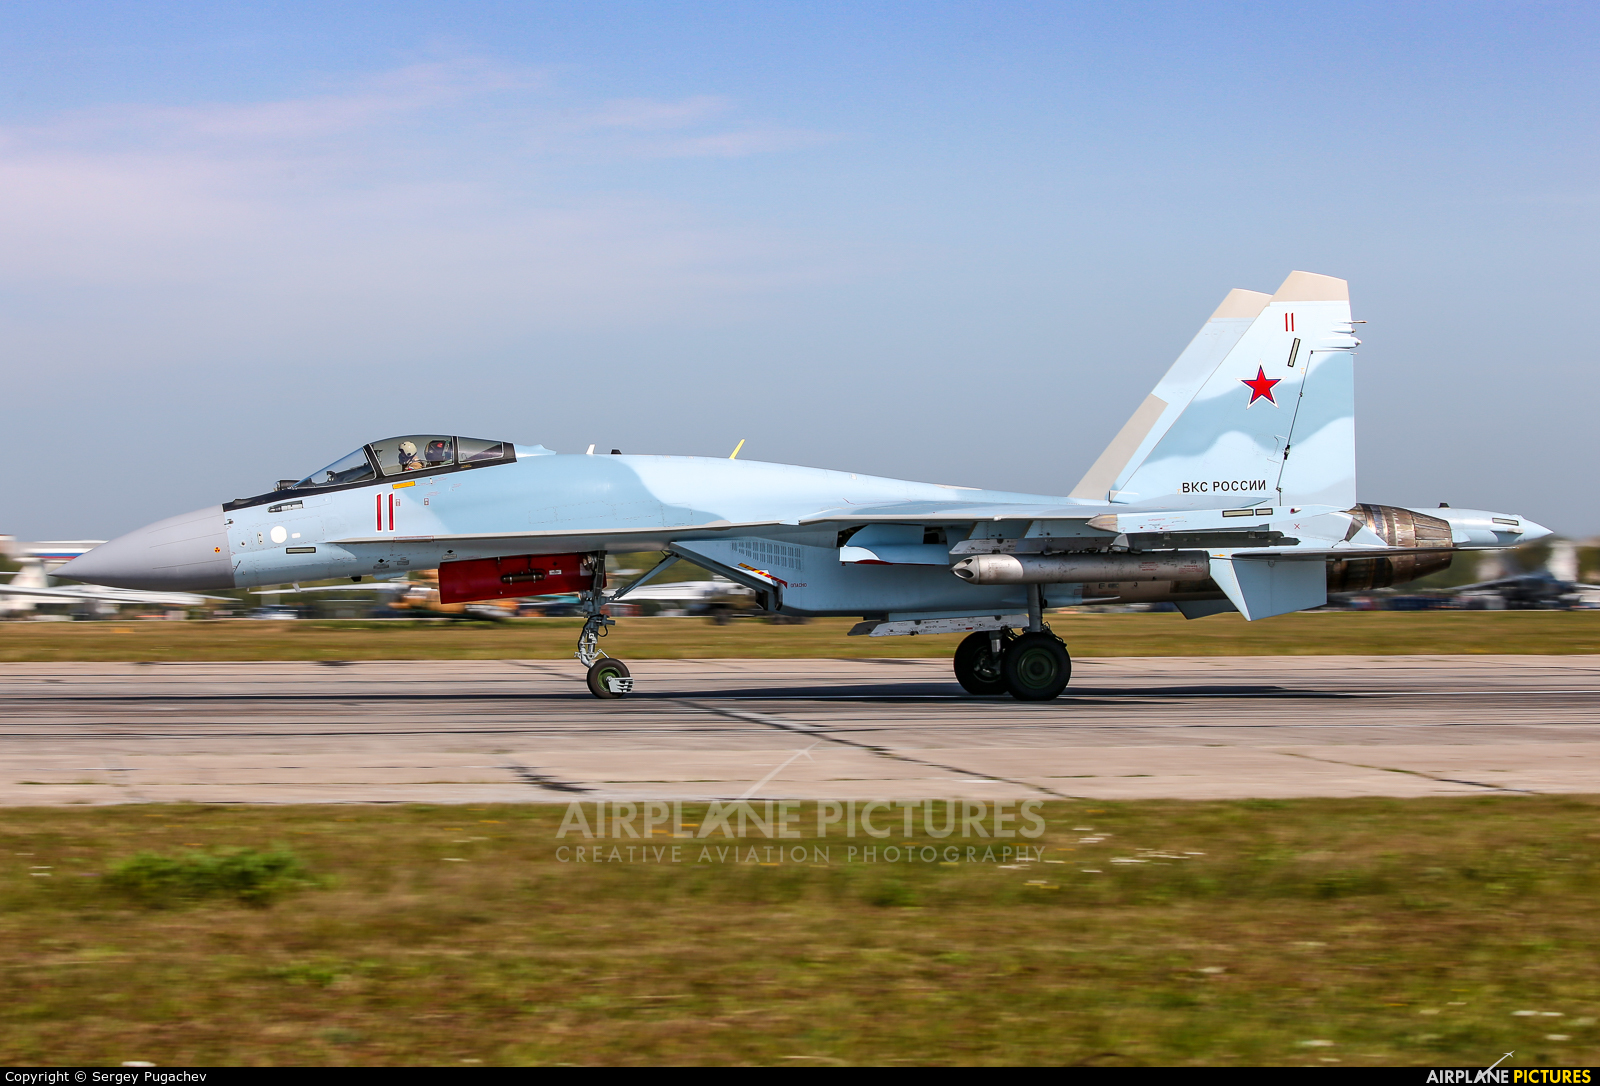 Russia - Air Force 11 aircraft at Undisclosed Location